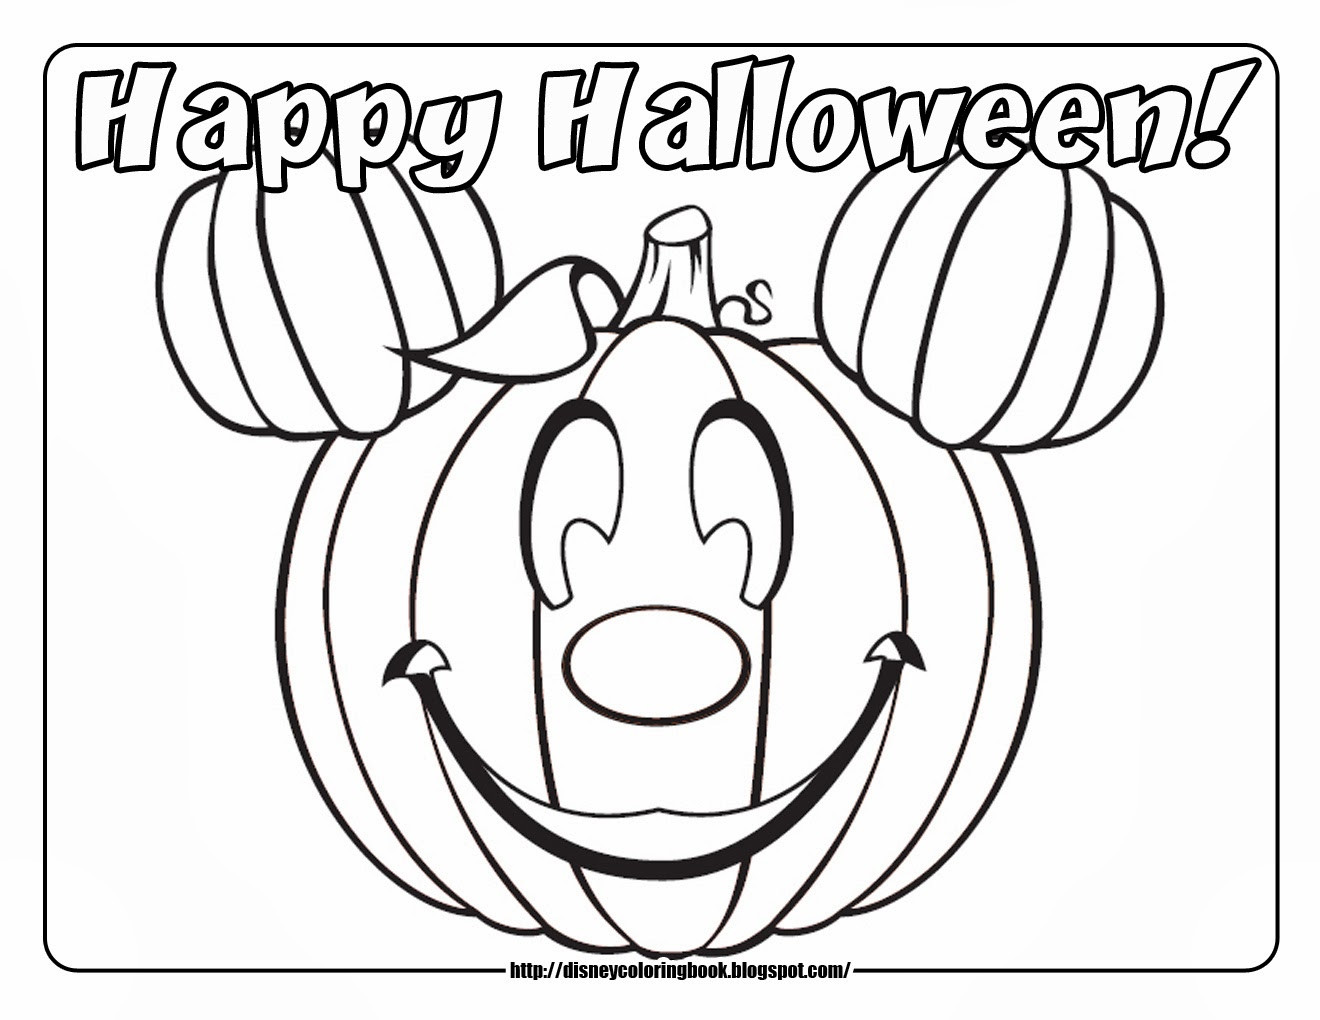 Halloween Free Coloring Pages Printable  Halloween Coloring Pages – Free Printable Minnesota Miranda